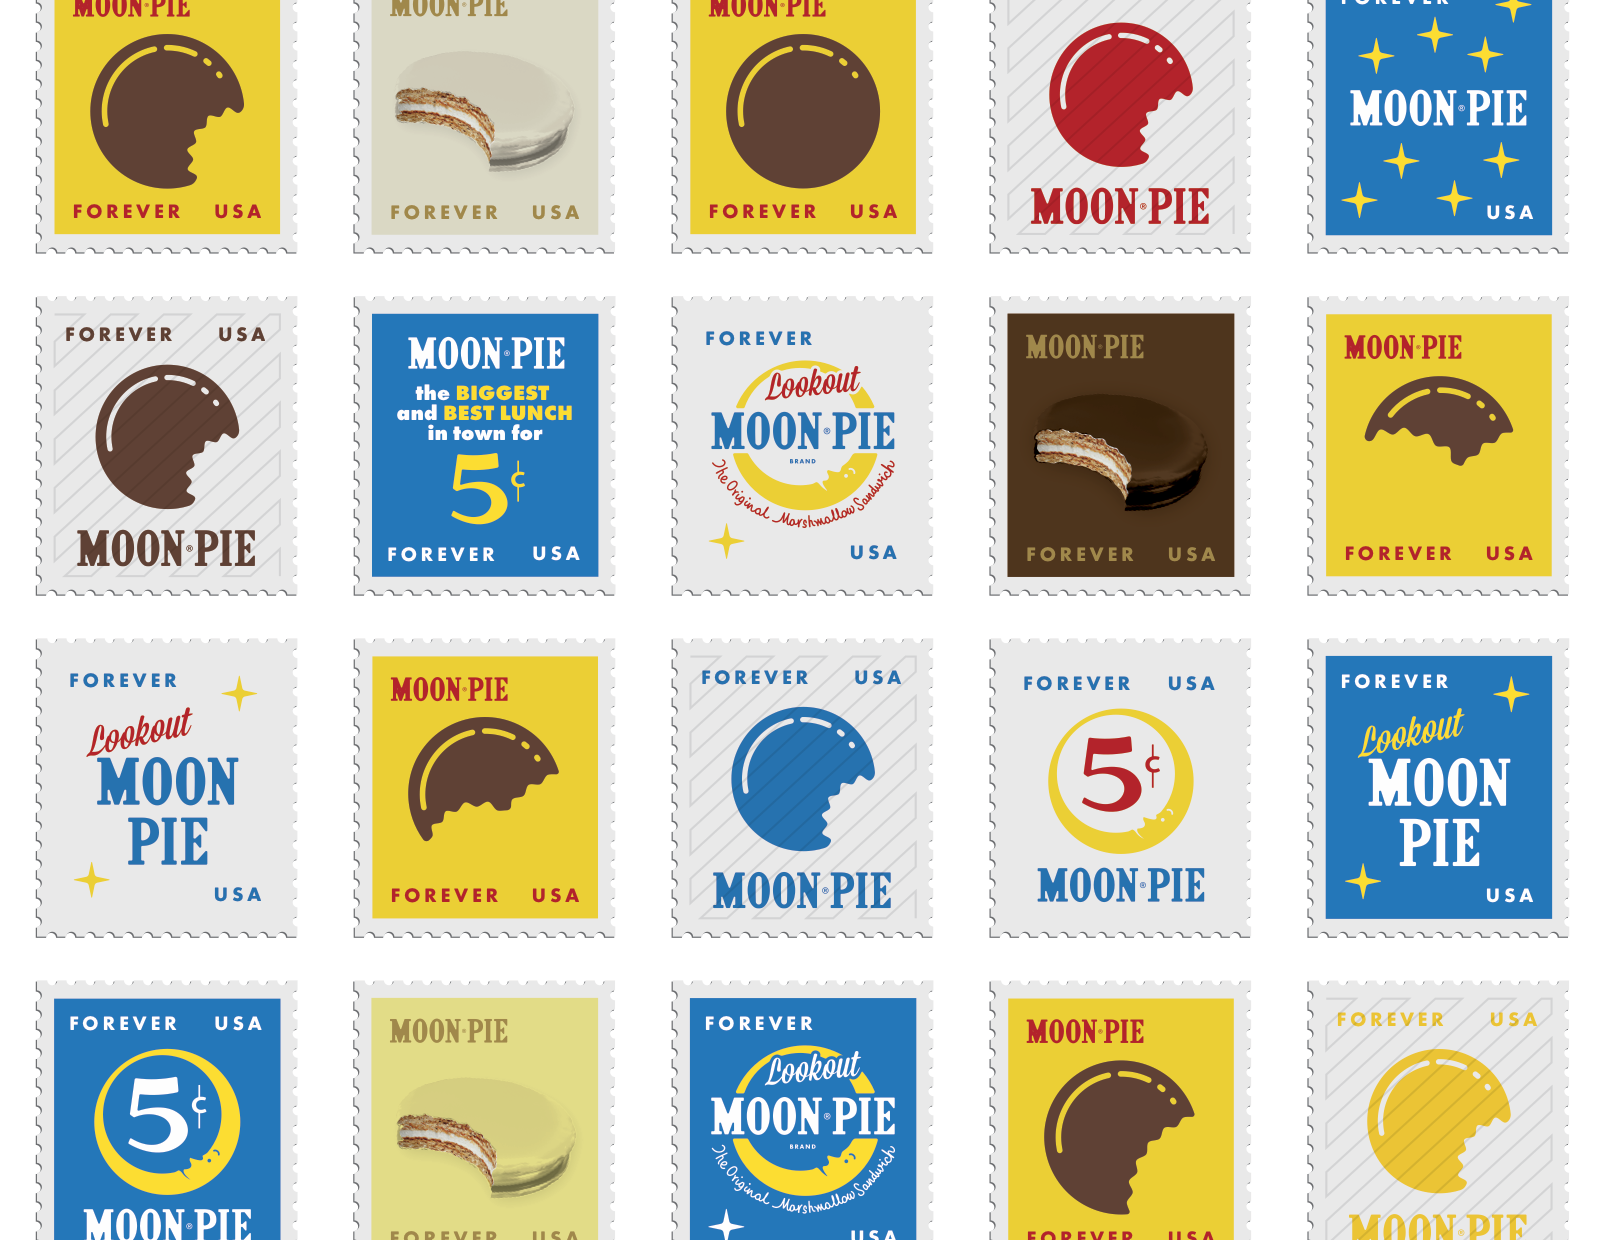 Moonpie Stamps Brand Application Logo